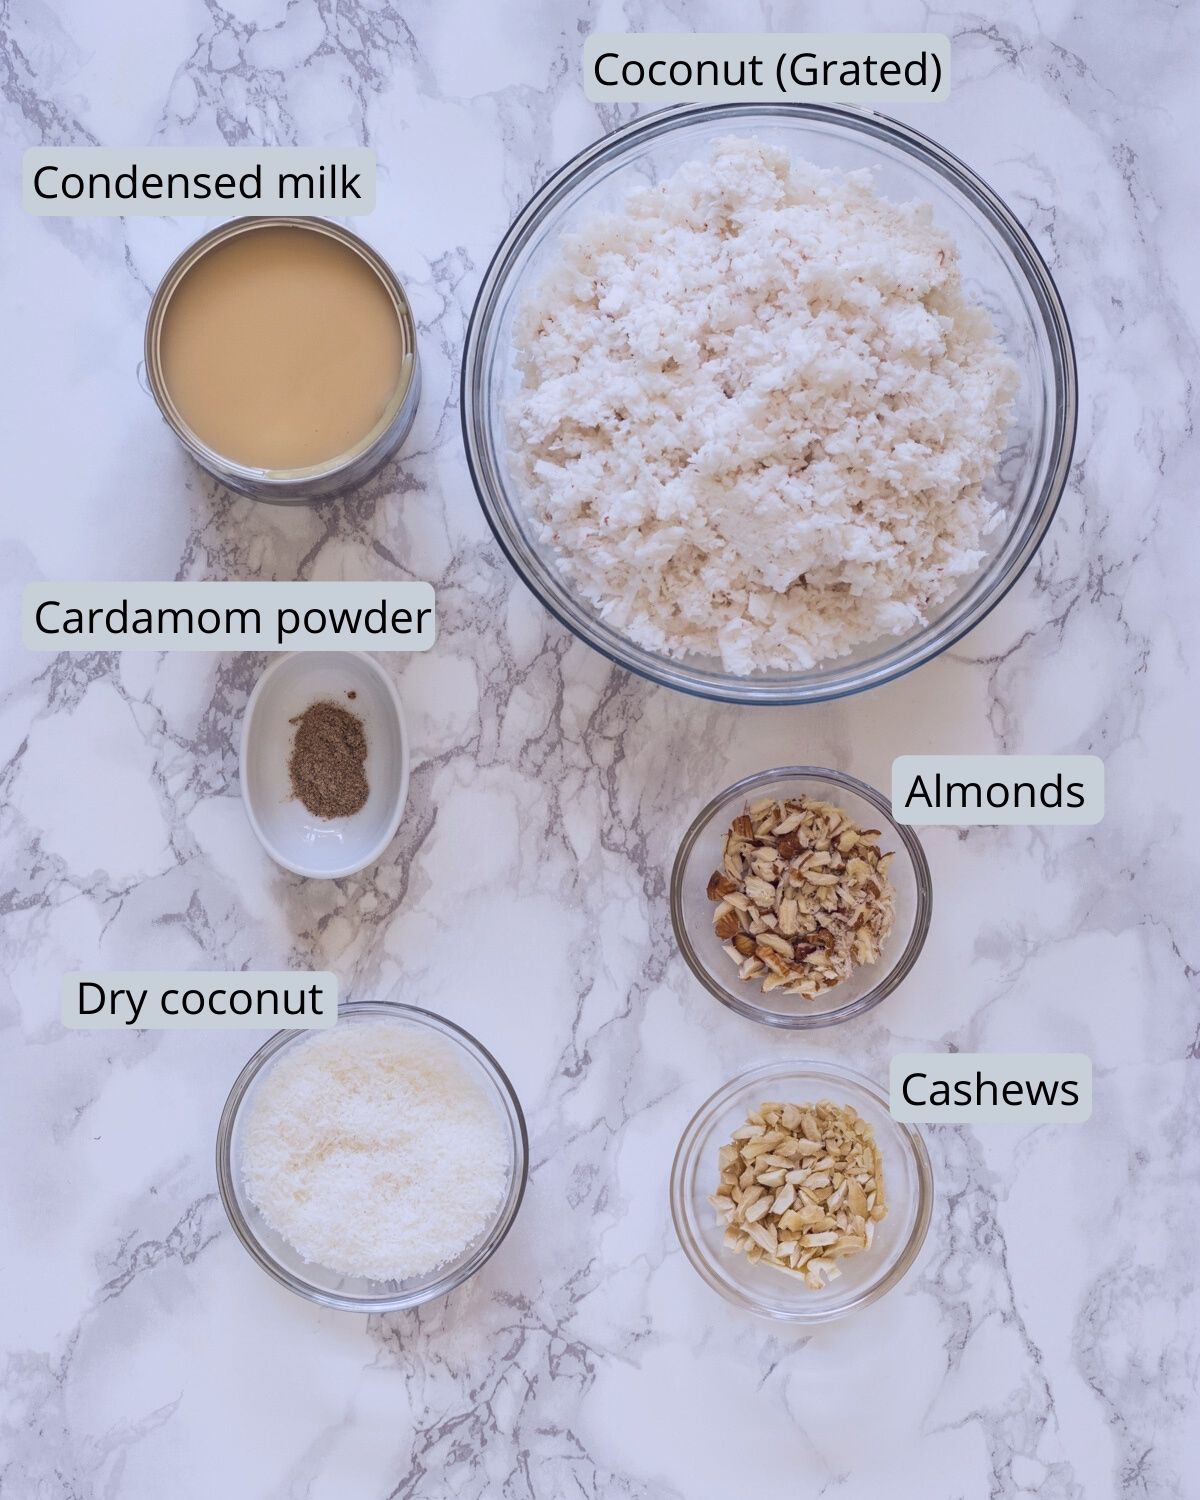 image of ingredients used for coconut ladoo. Includes coconut, condensed milk, cardamom, nuts, dry coconut.